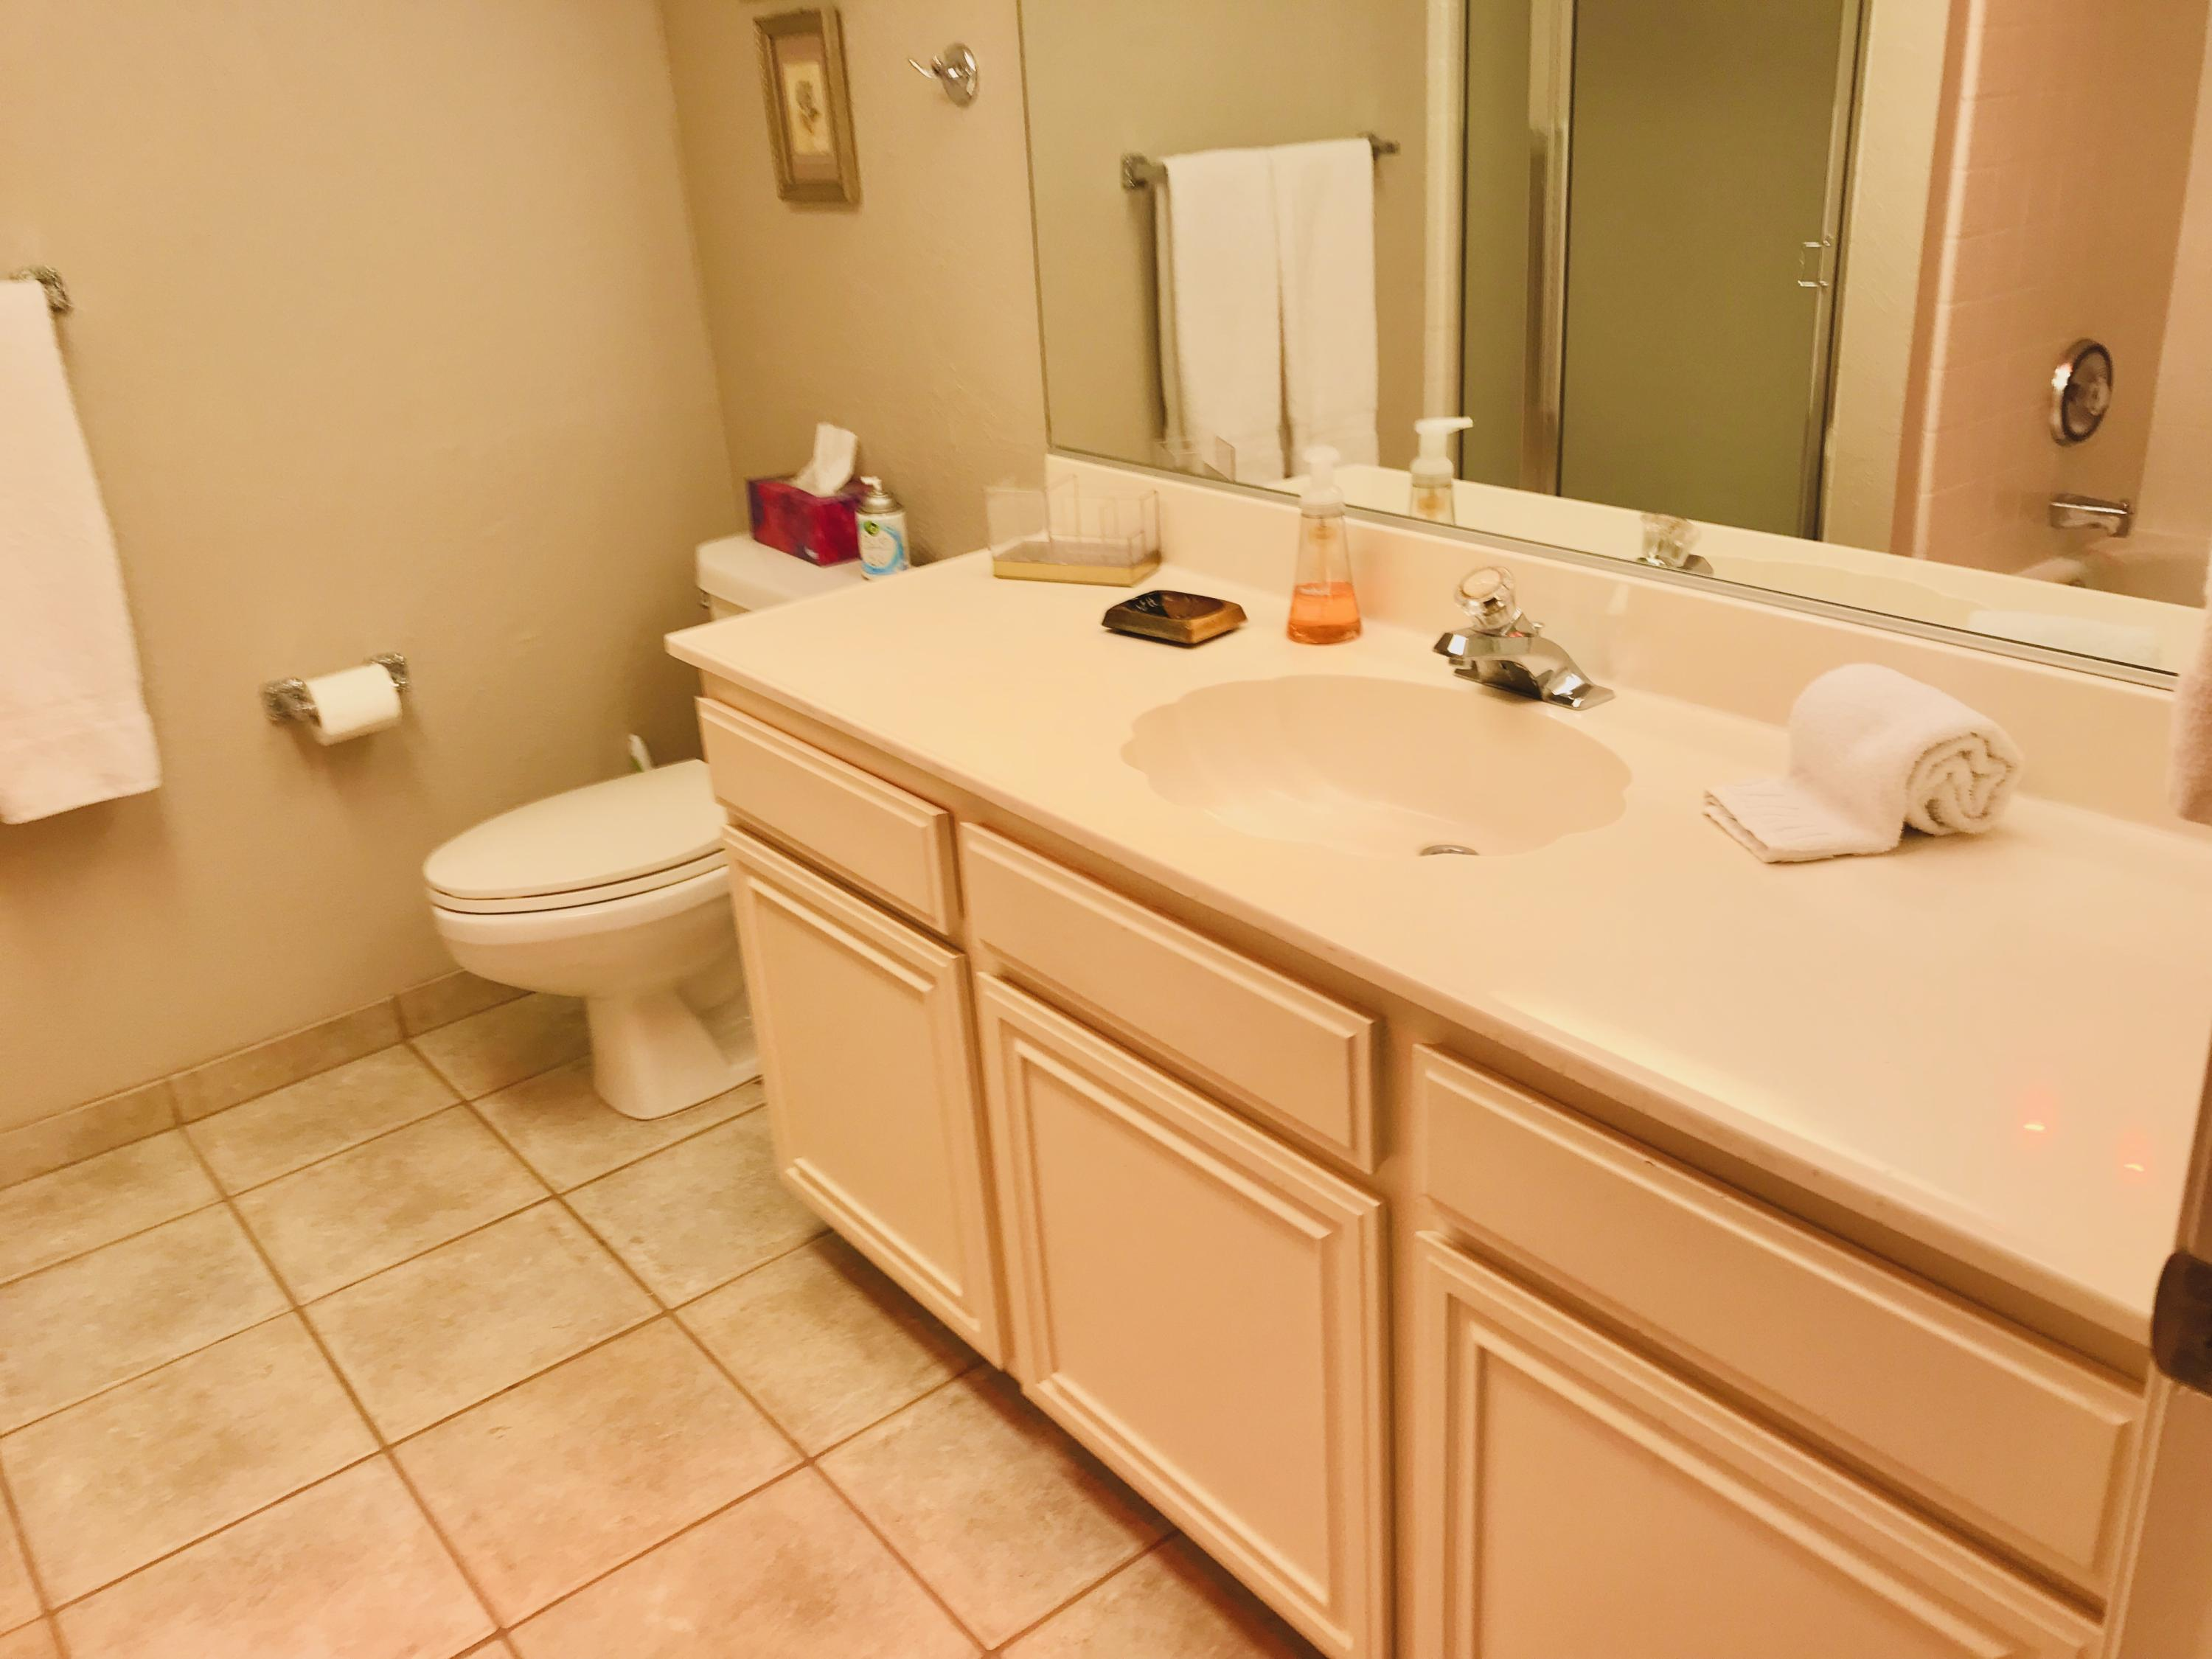 34940 Calle Avila, Cathedral City, California 92234, 2 Bedrooms Bedrooms, ,2 BathroomsBathrooms,Residential,For Sale,34940 Calle Avila,219043275